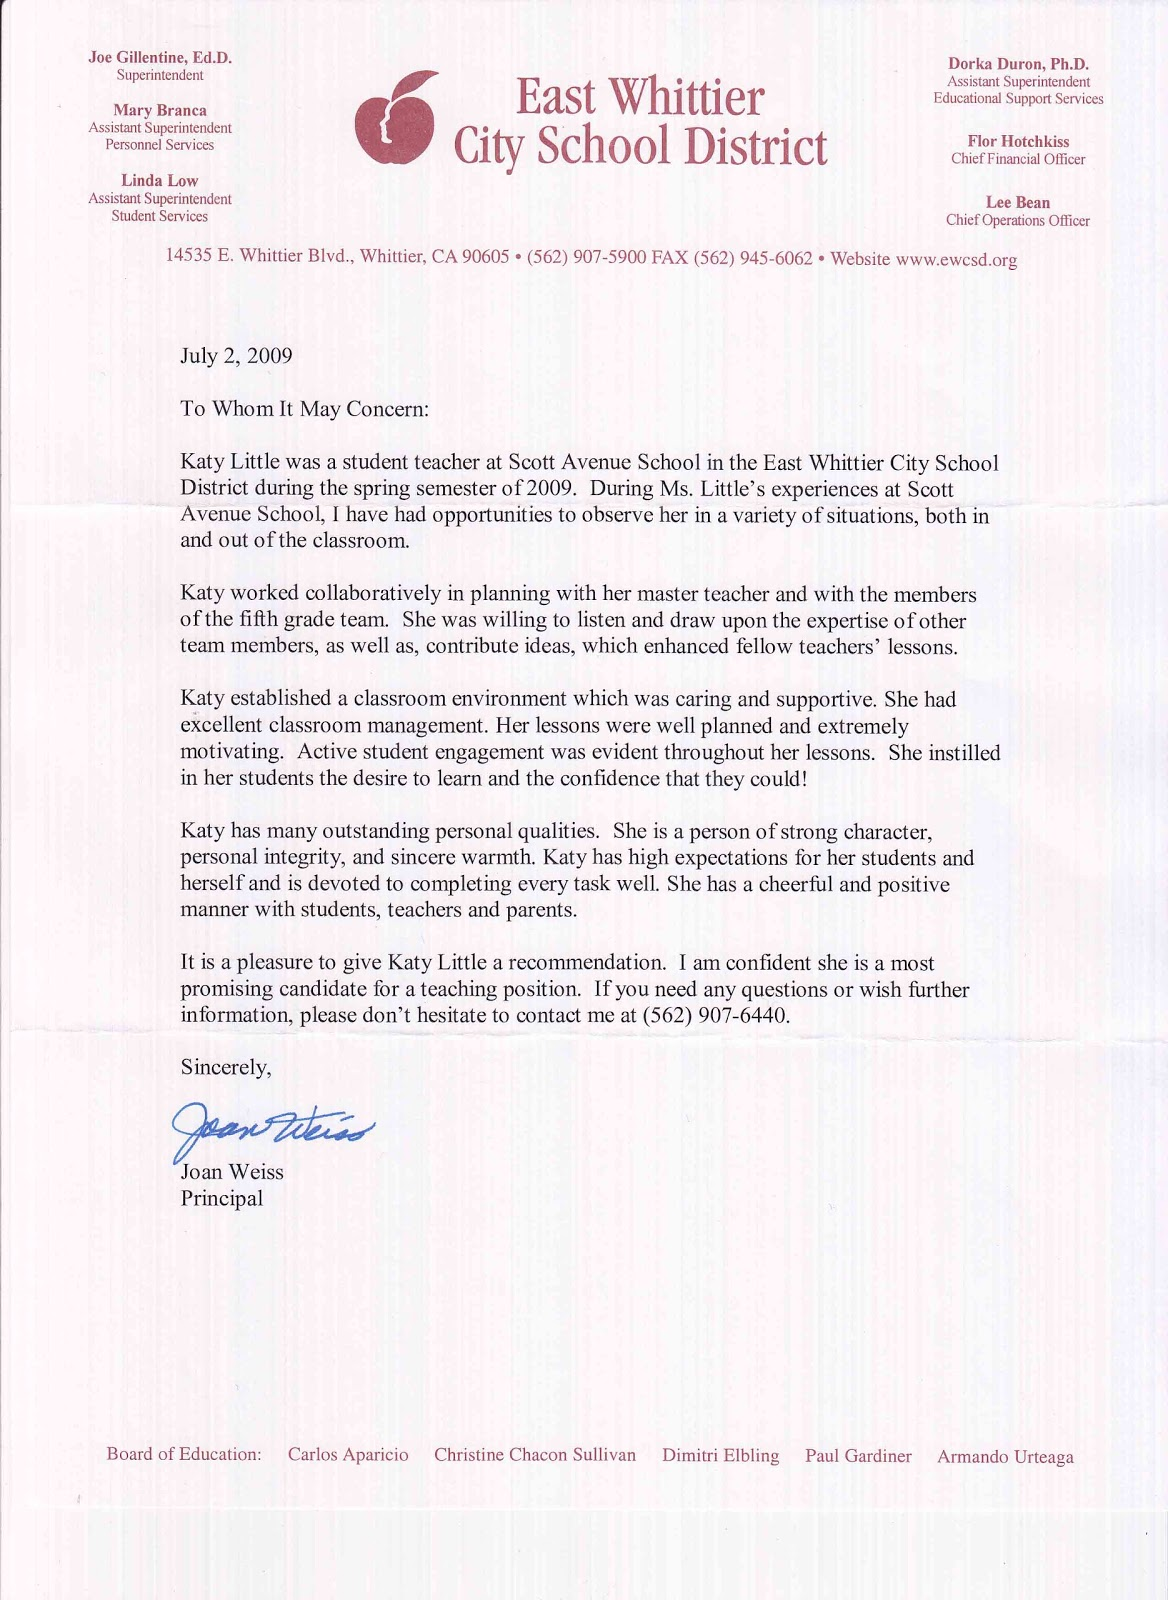 Recommendation Letter for Scholarship Template – with Samples